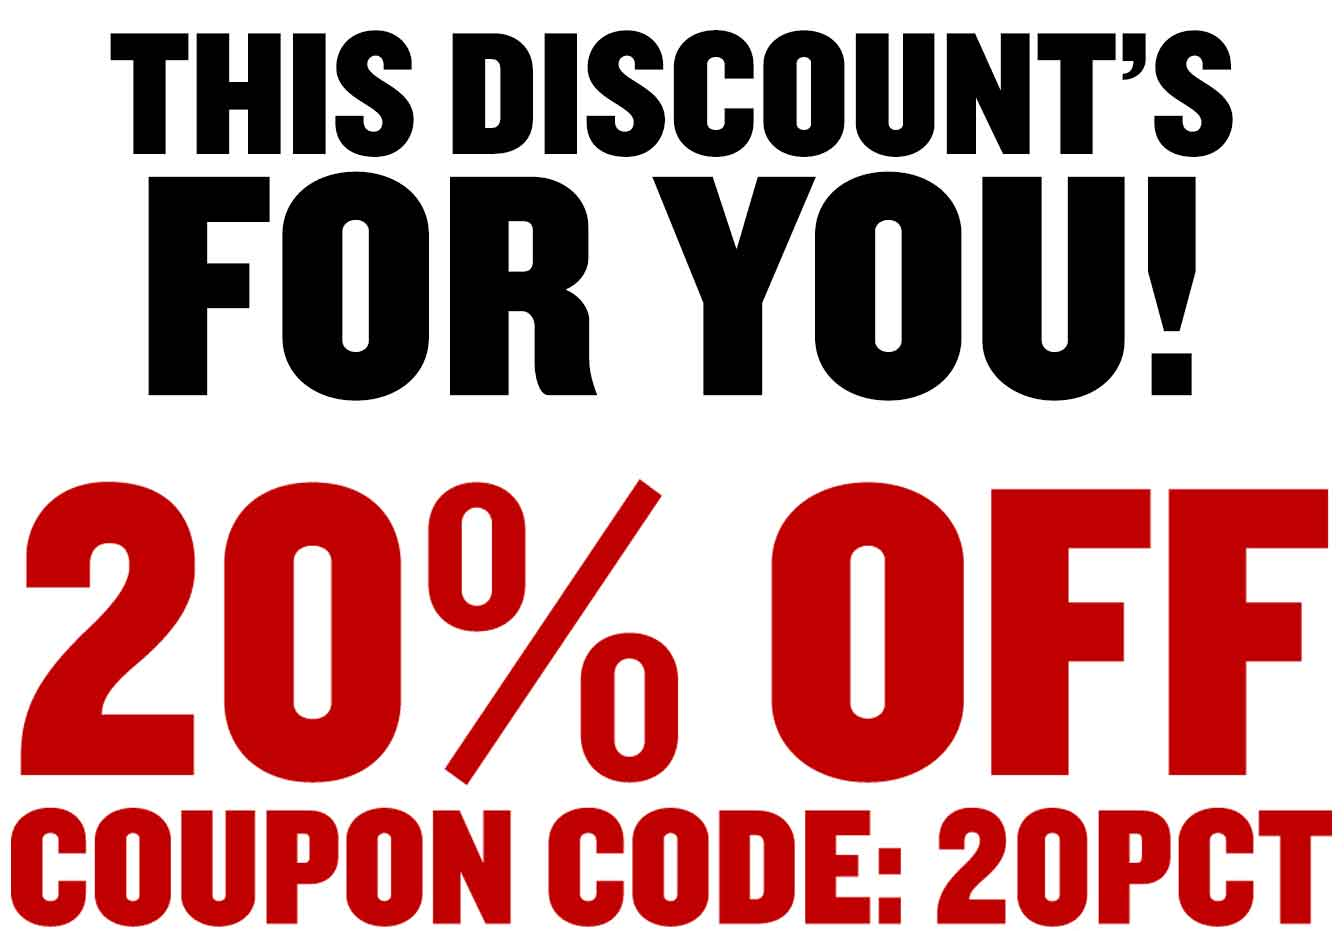 20% Off - Use Coupon Code: 20PCT